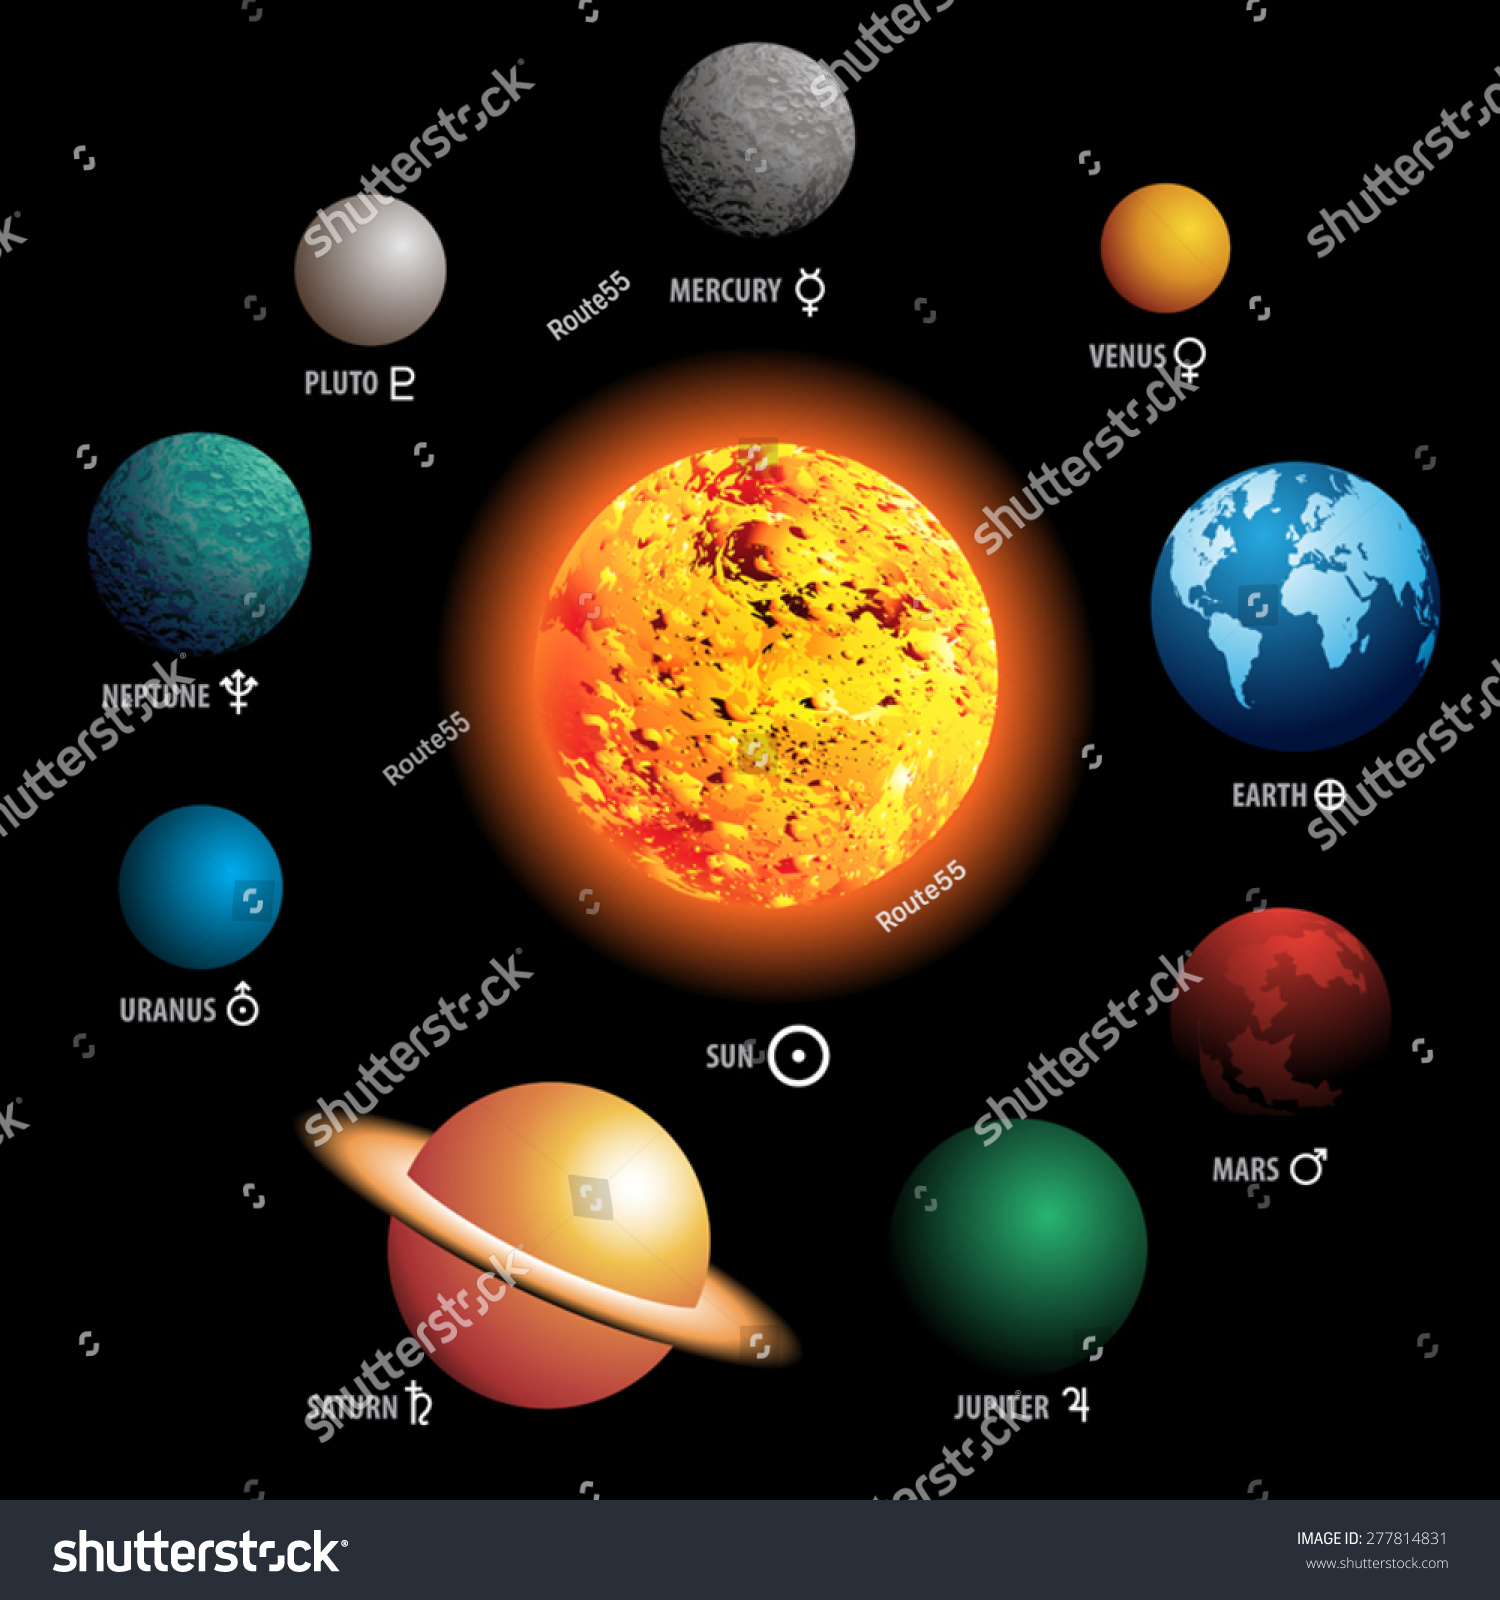 Vector Illustration Planets Our Solar System Stock Vector ...